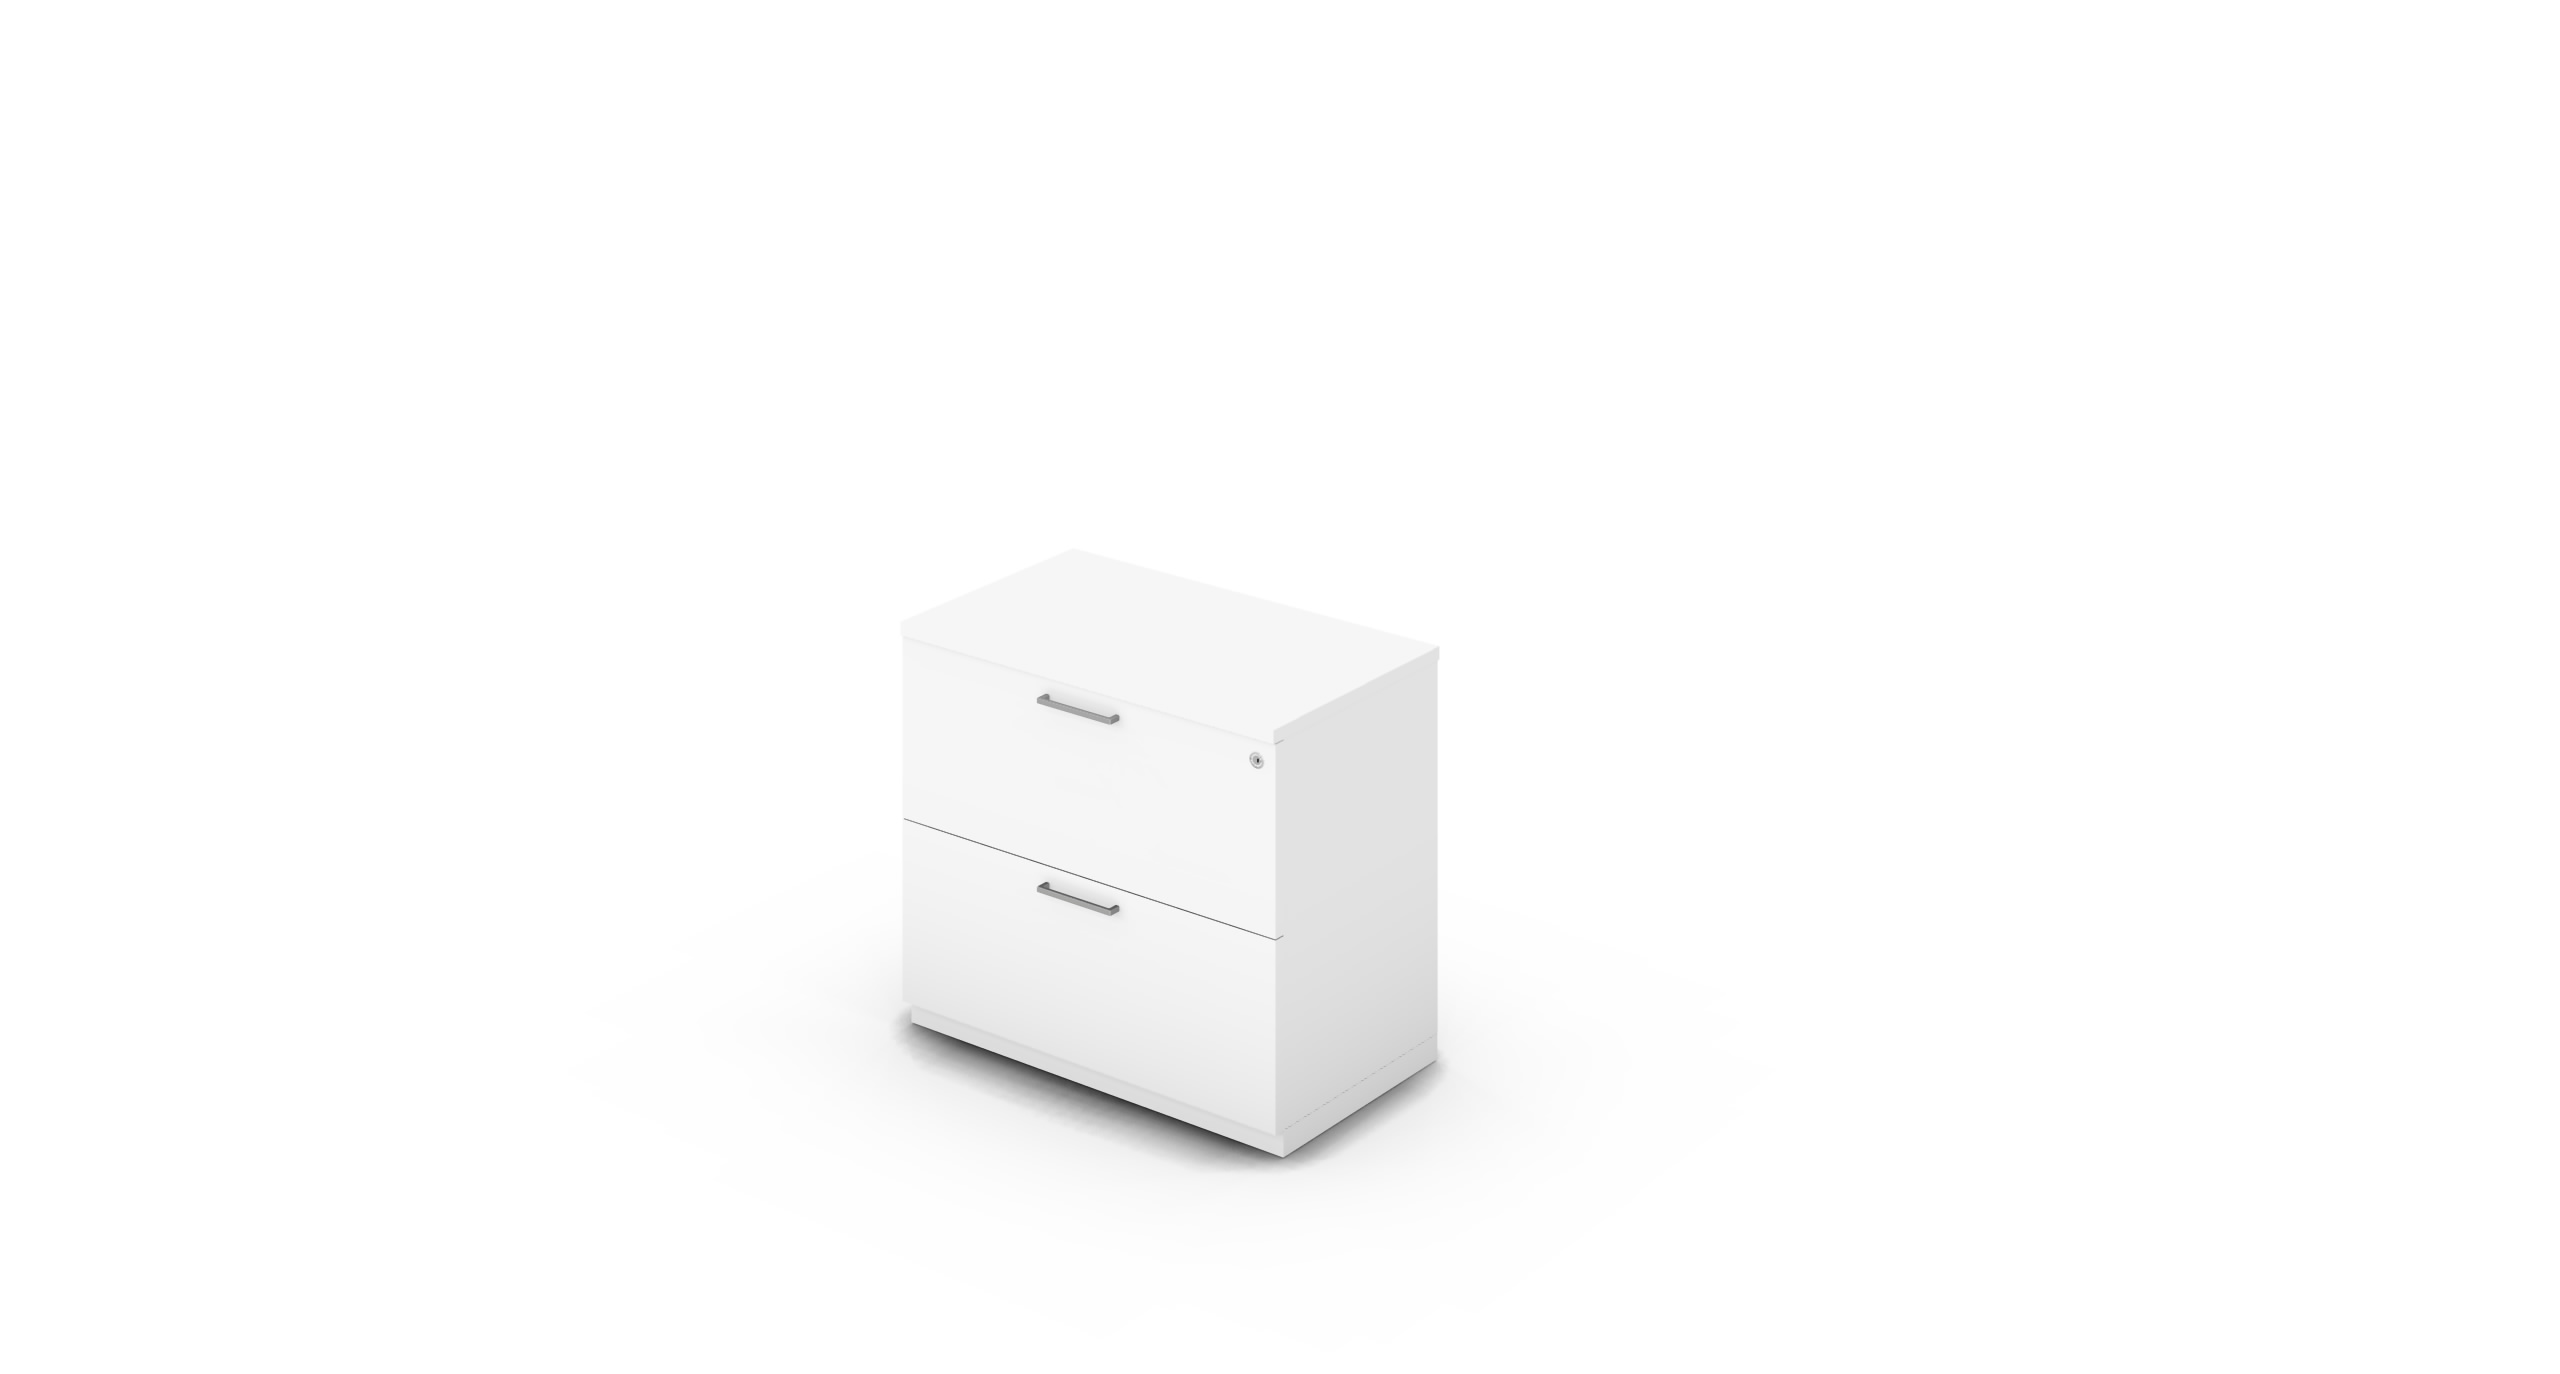 Cabinet_800x450x775_DR_White_Bar_Square_WithCylinder